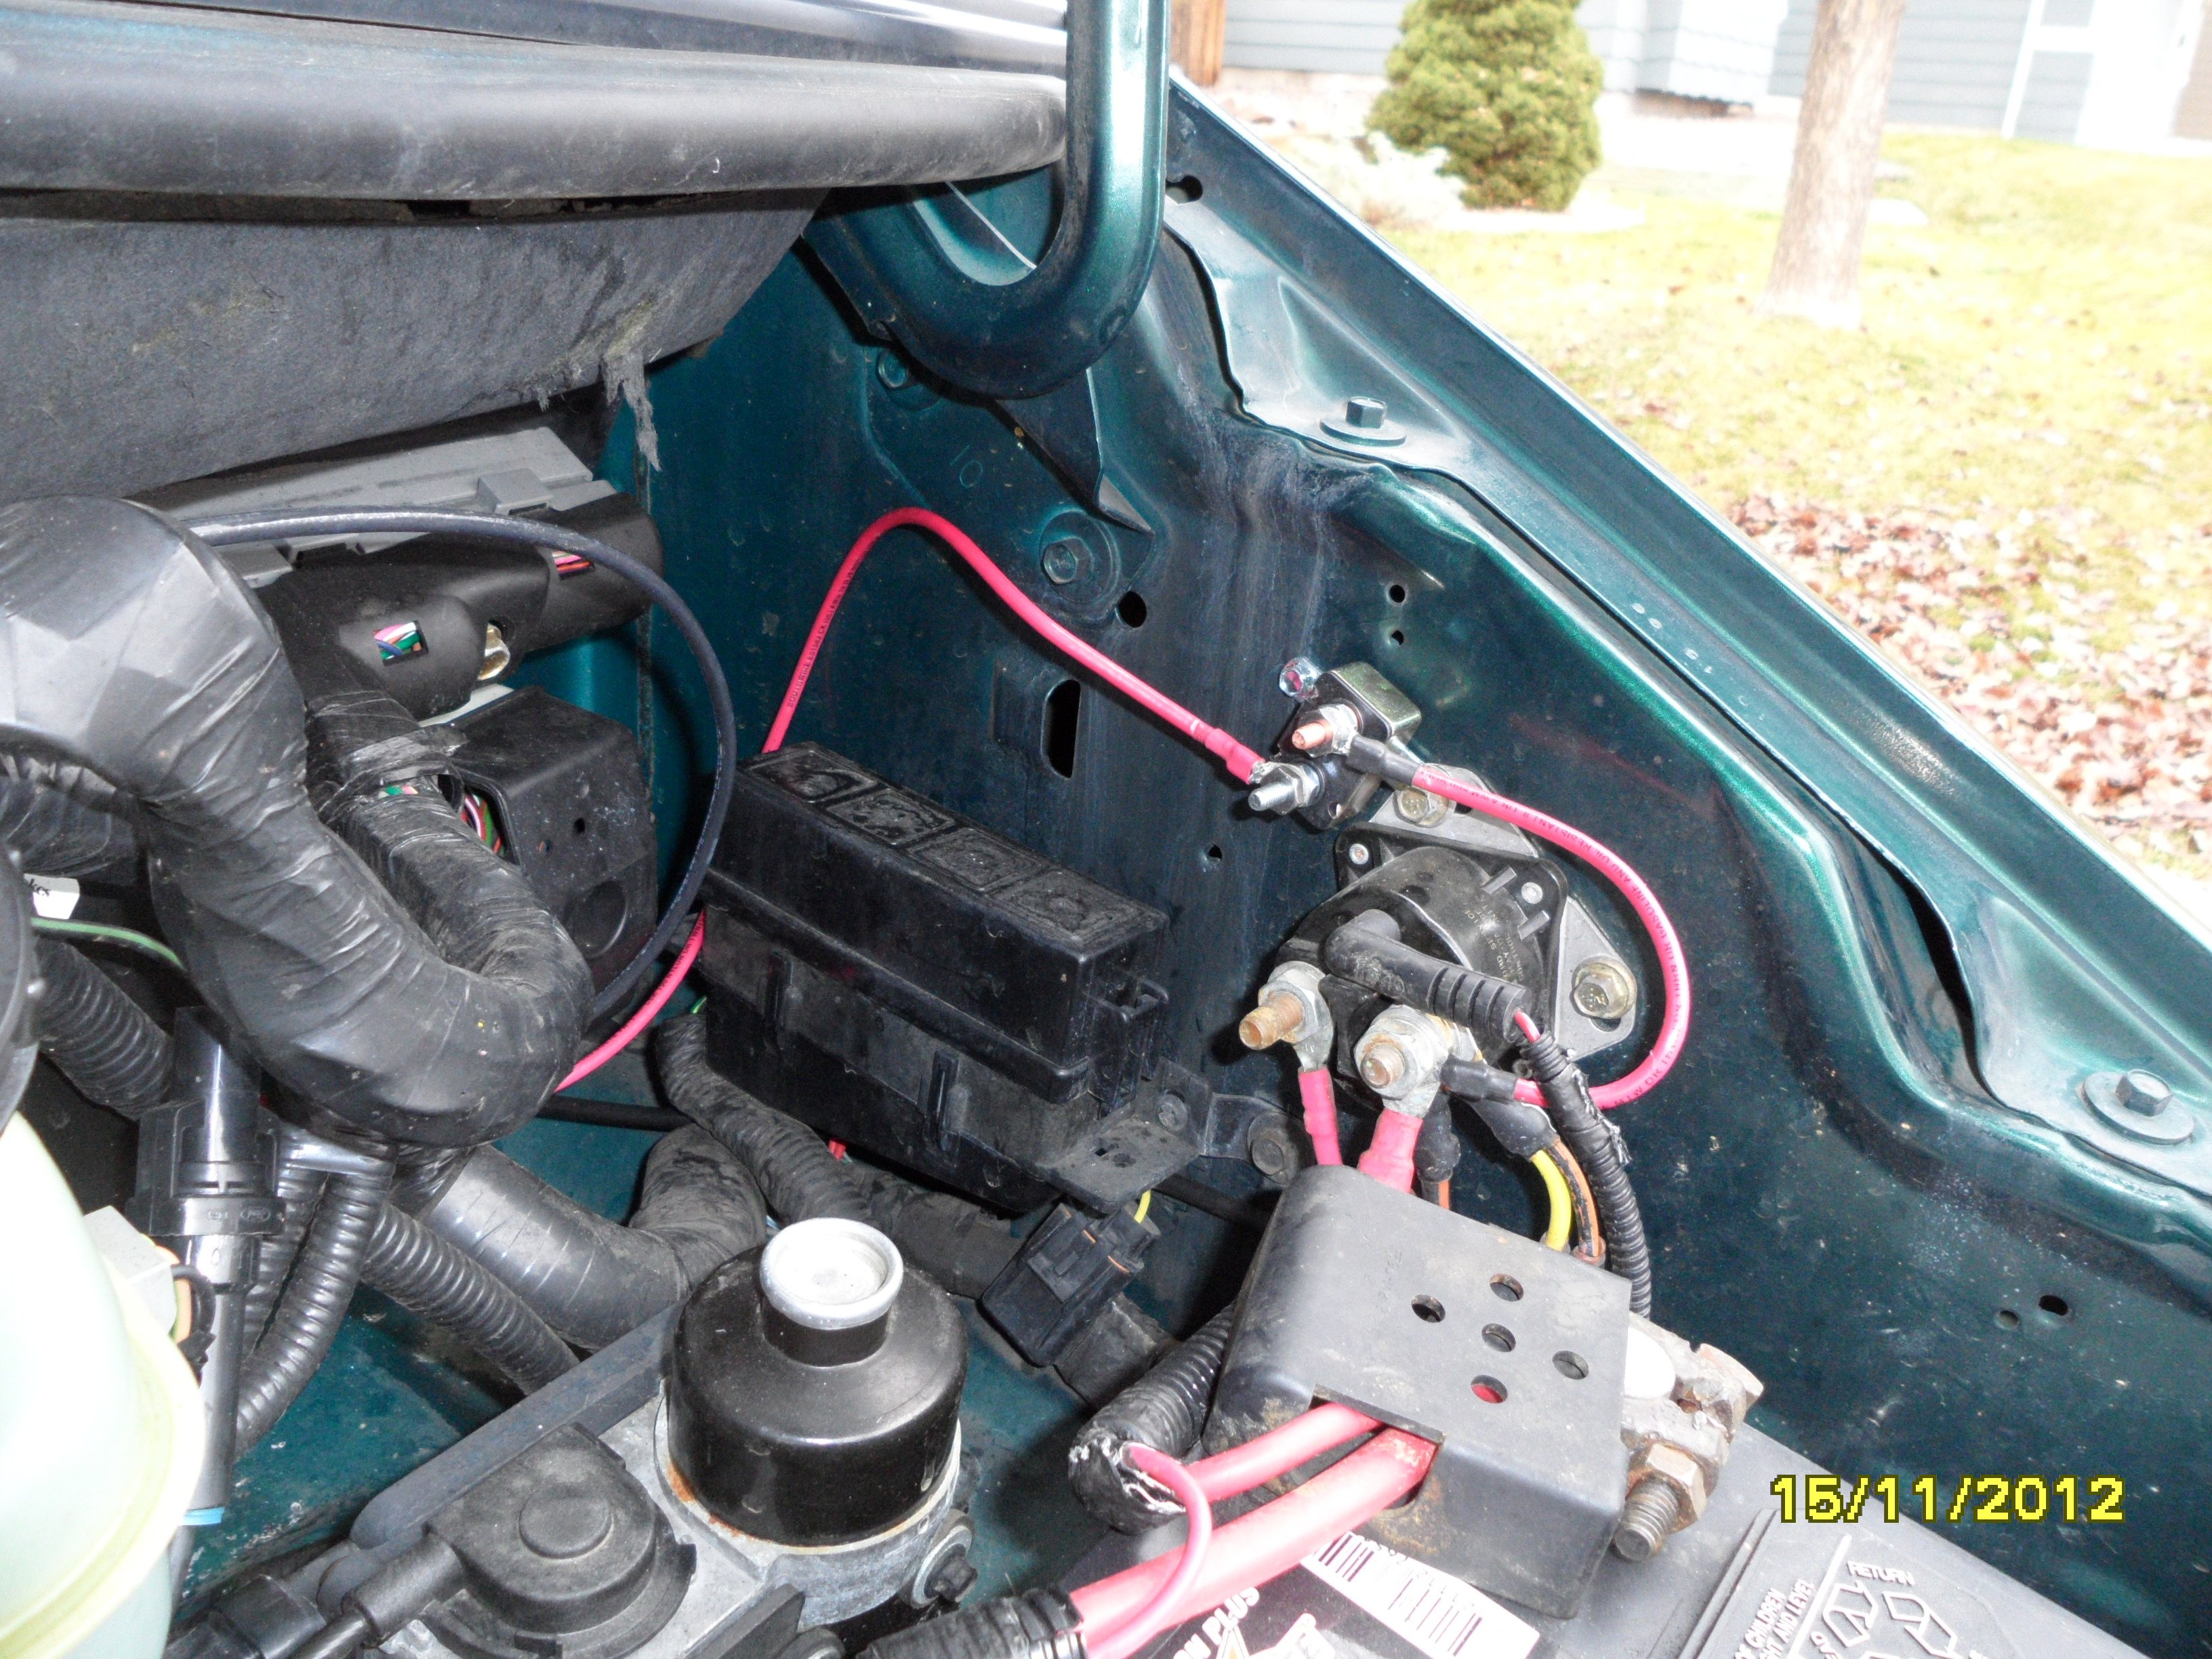 Ford Ranger Starter Solenoid Wiring Diagram Trusted 1984 1988 Basic Guide U2022 Problems